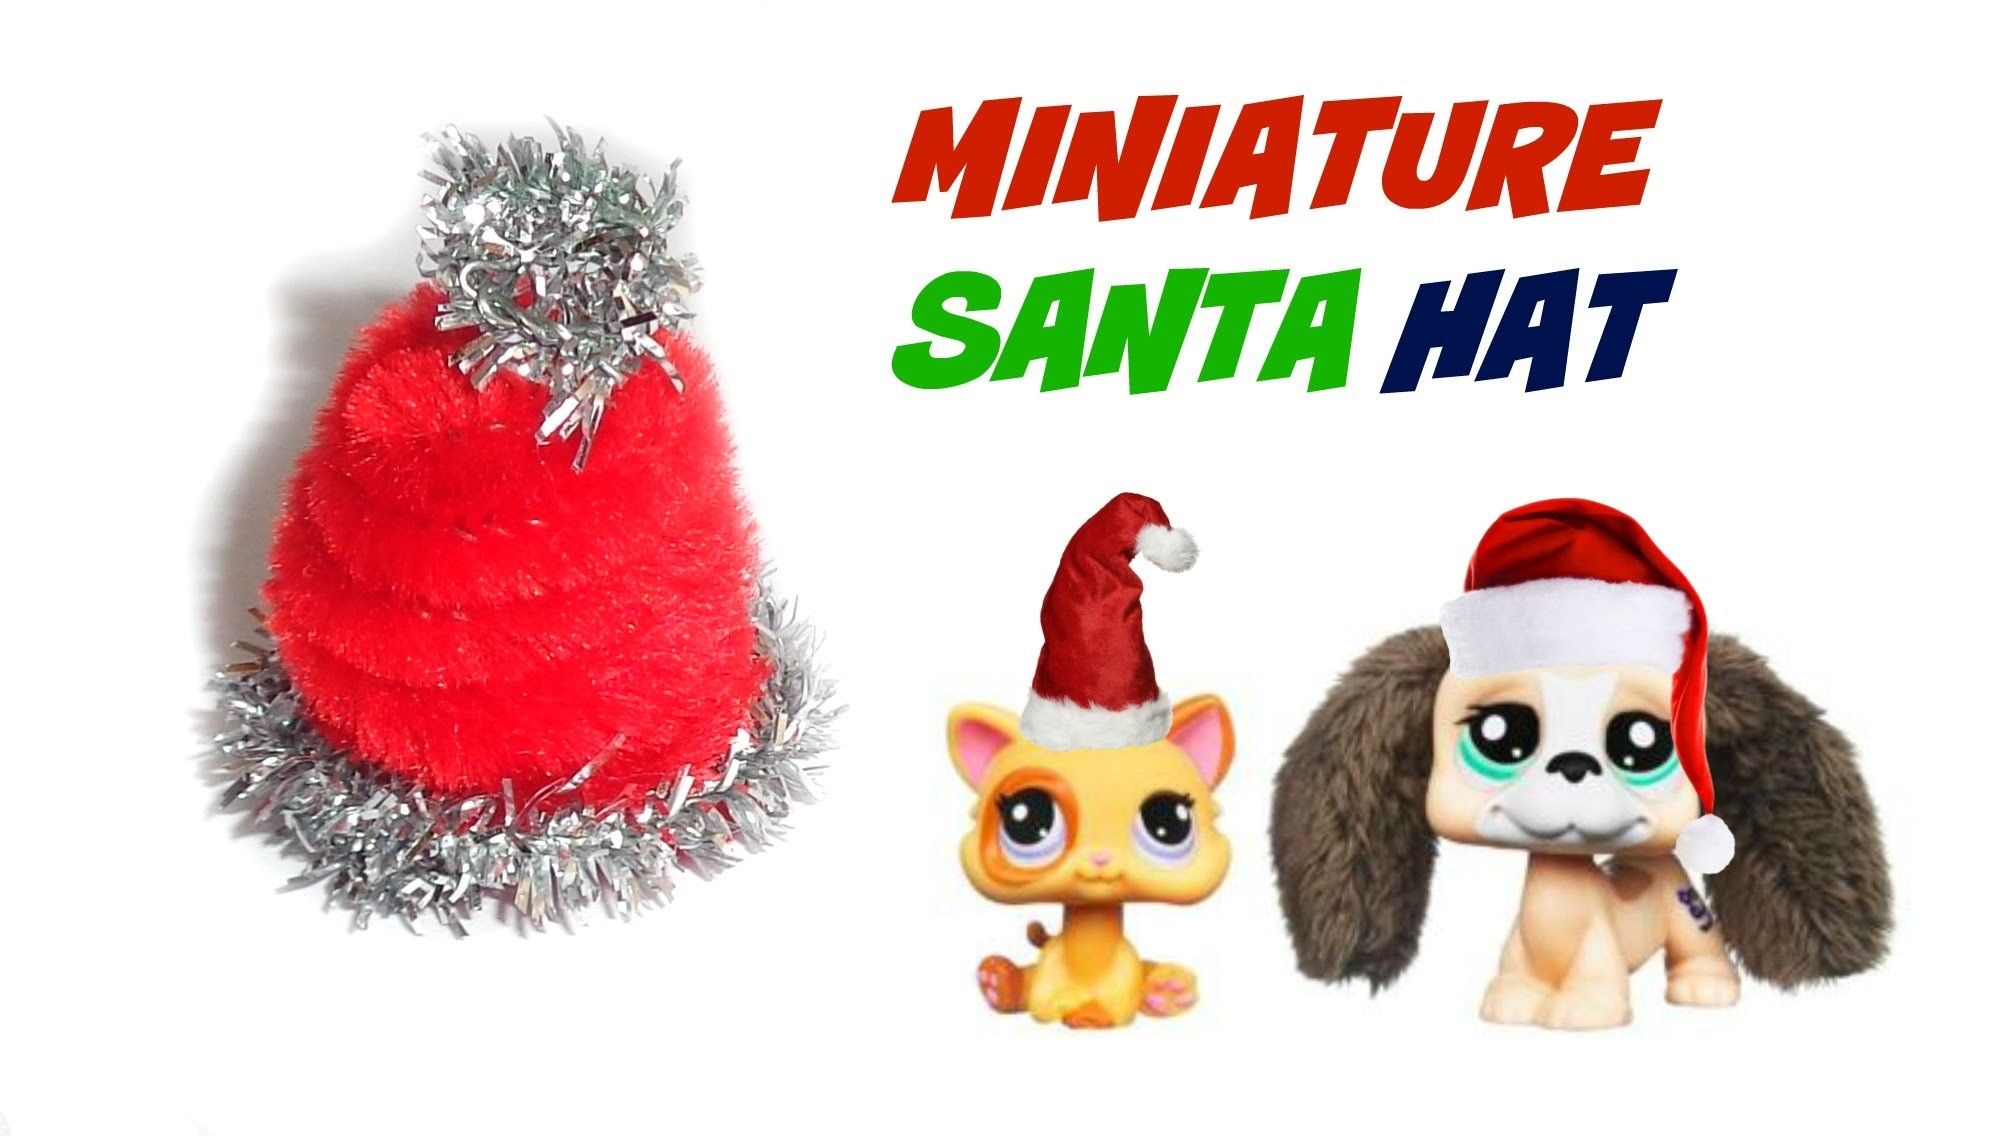 Miniature Santa Hat - DIY LPS Stuff, Crafts & Accessories